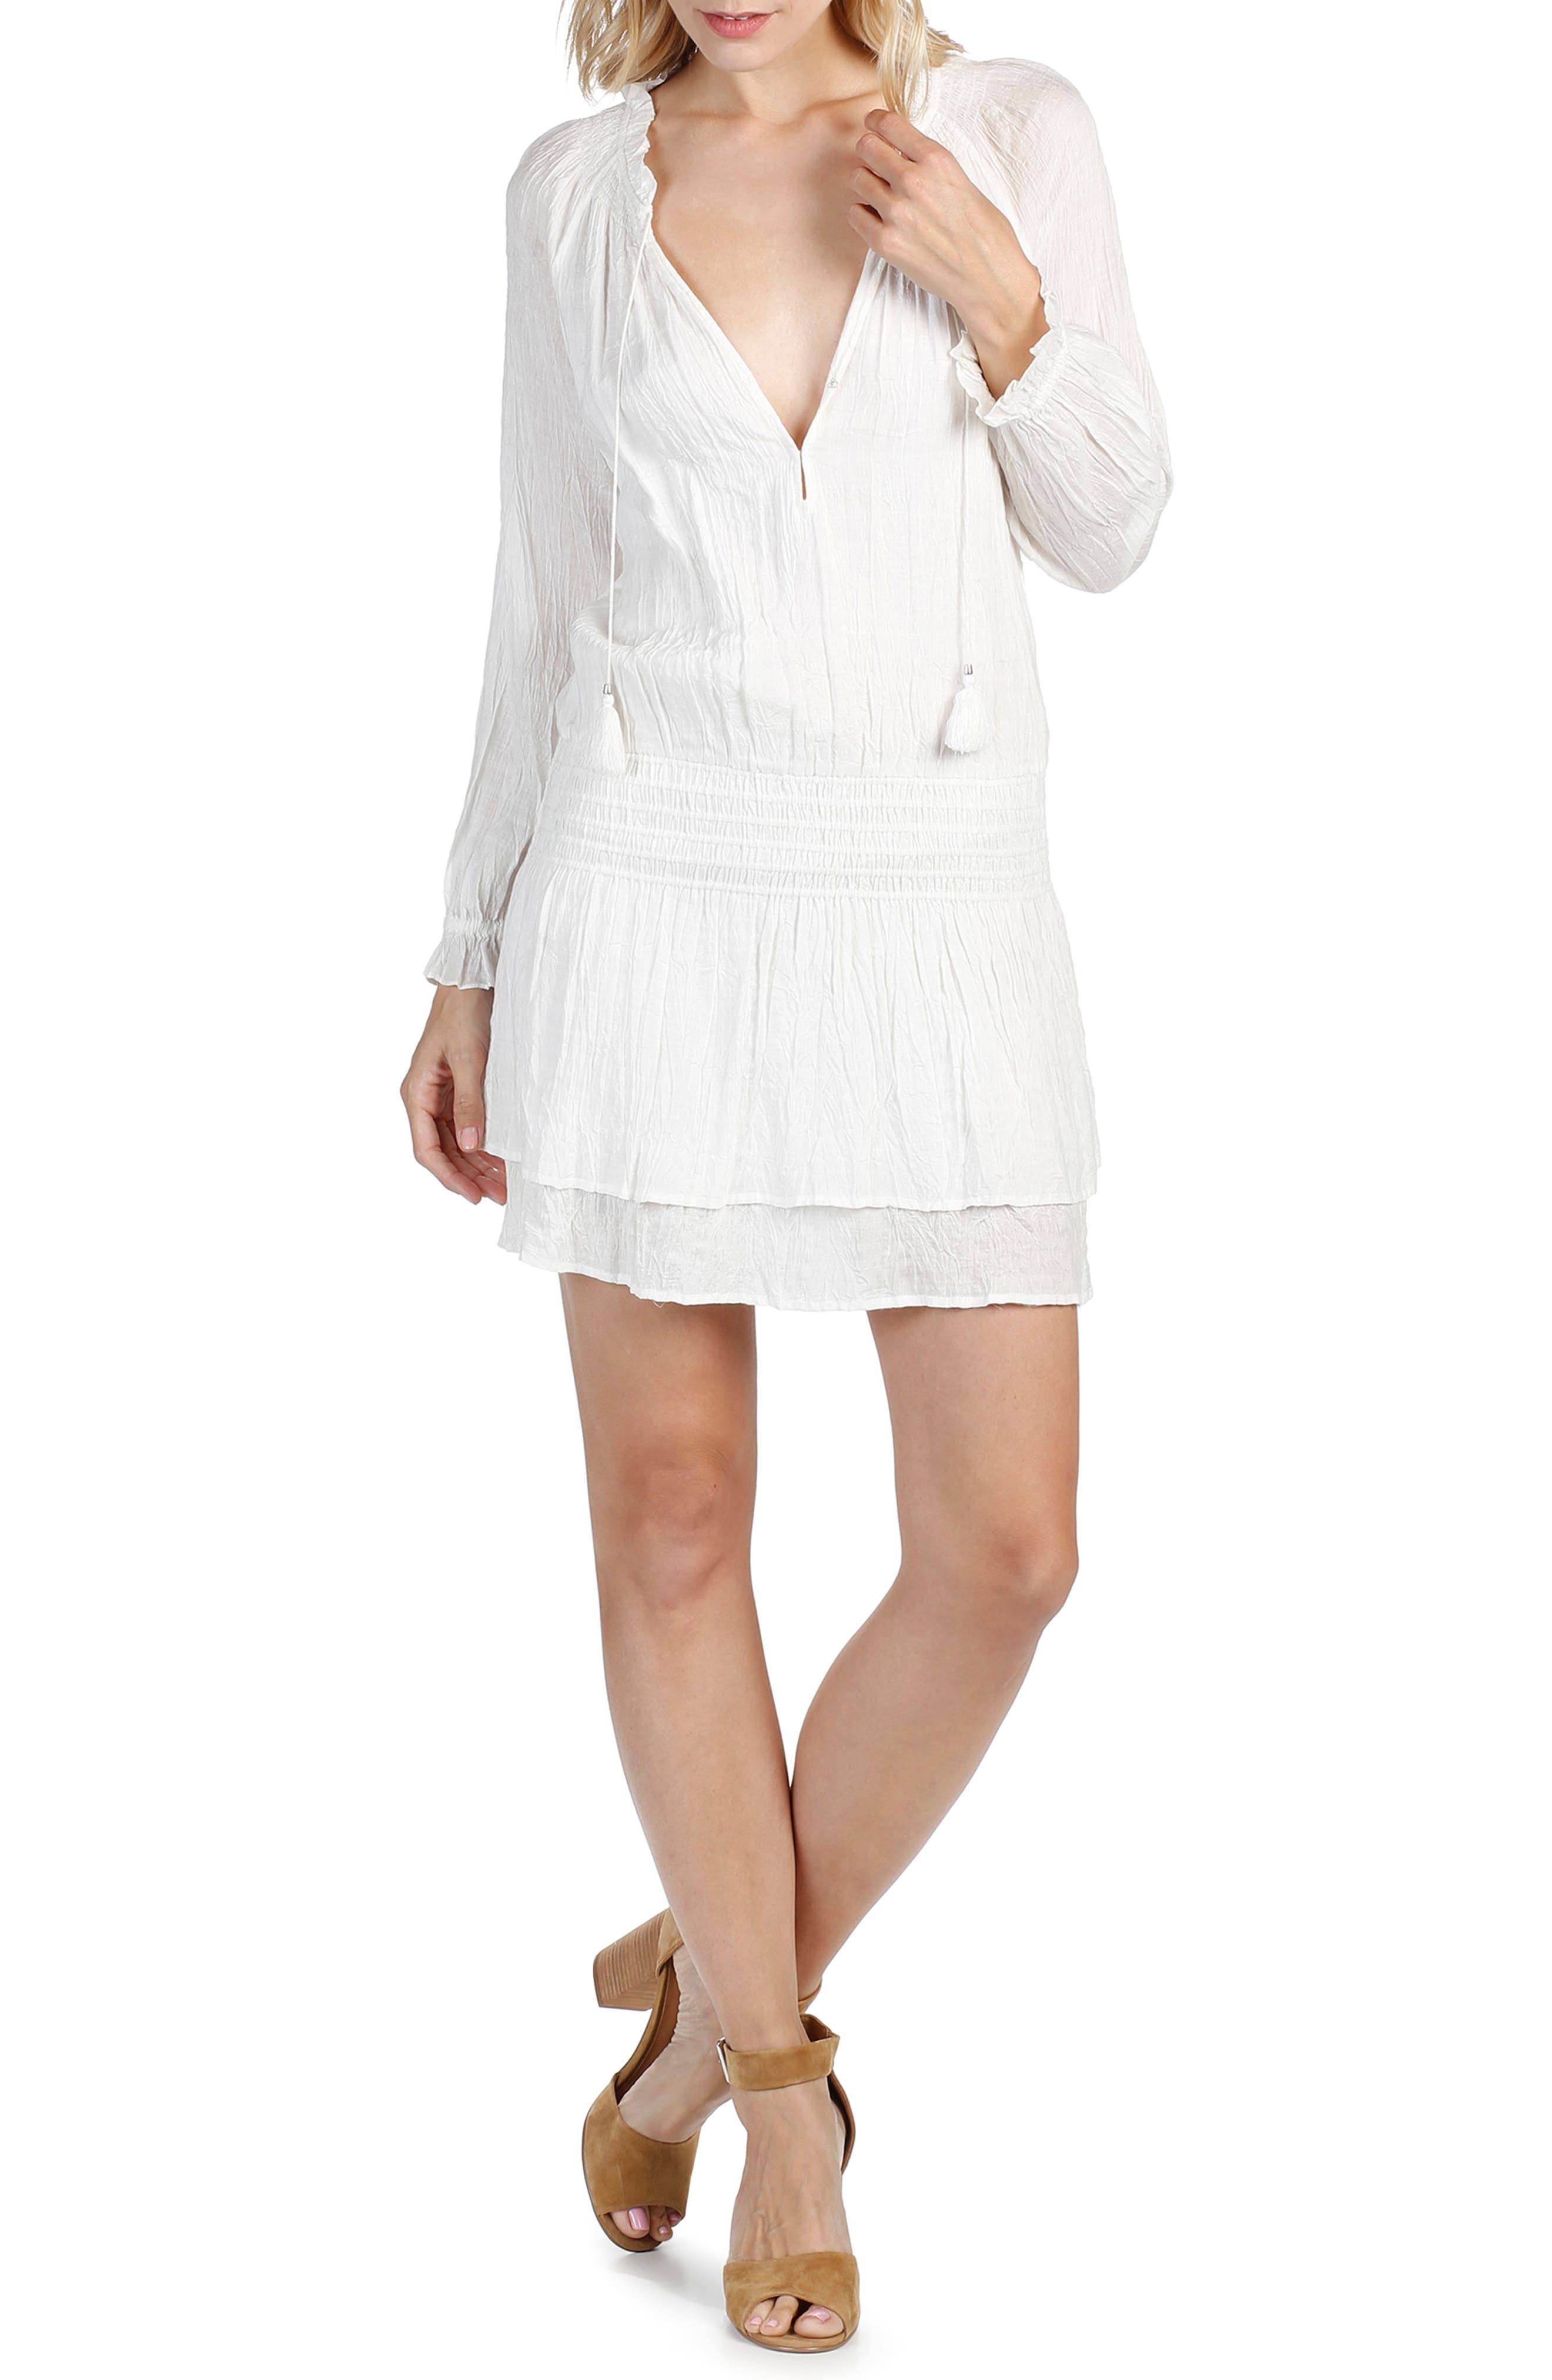 Lemay Dress,                             Alternate thumbnail 5, color,                             WHITE